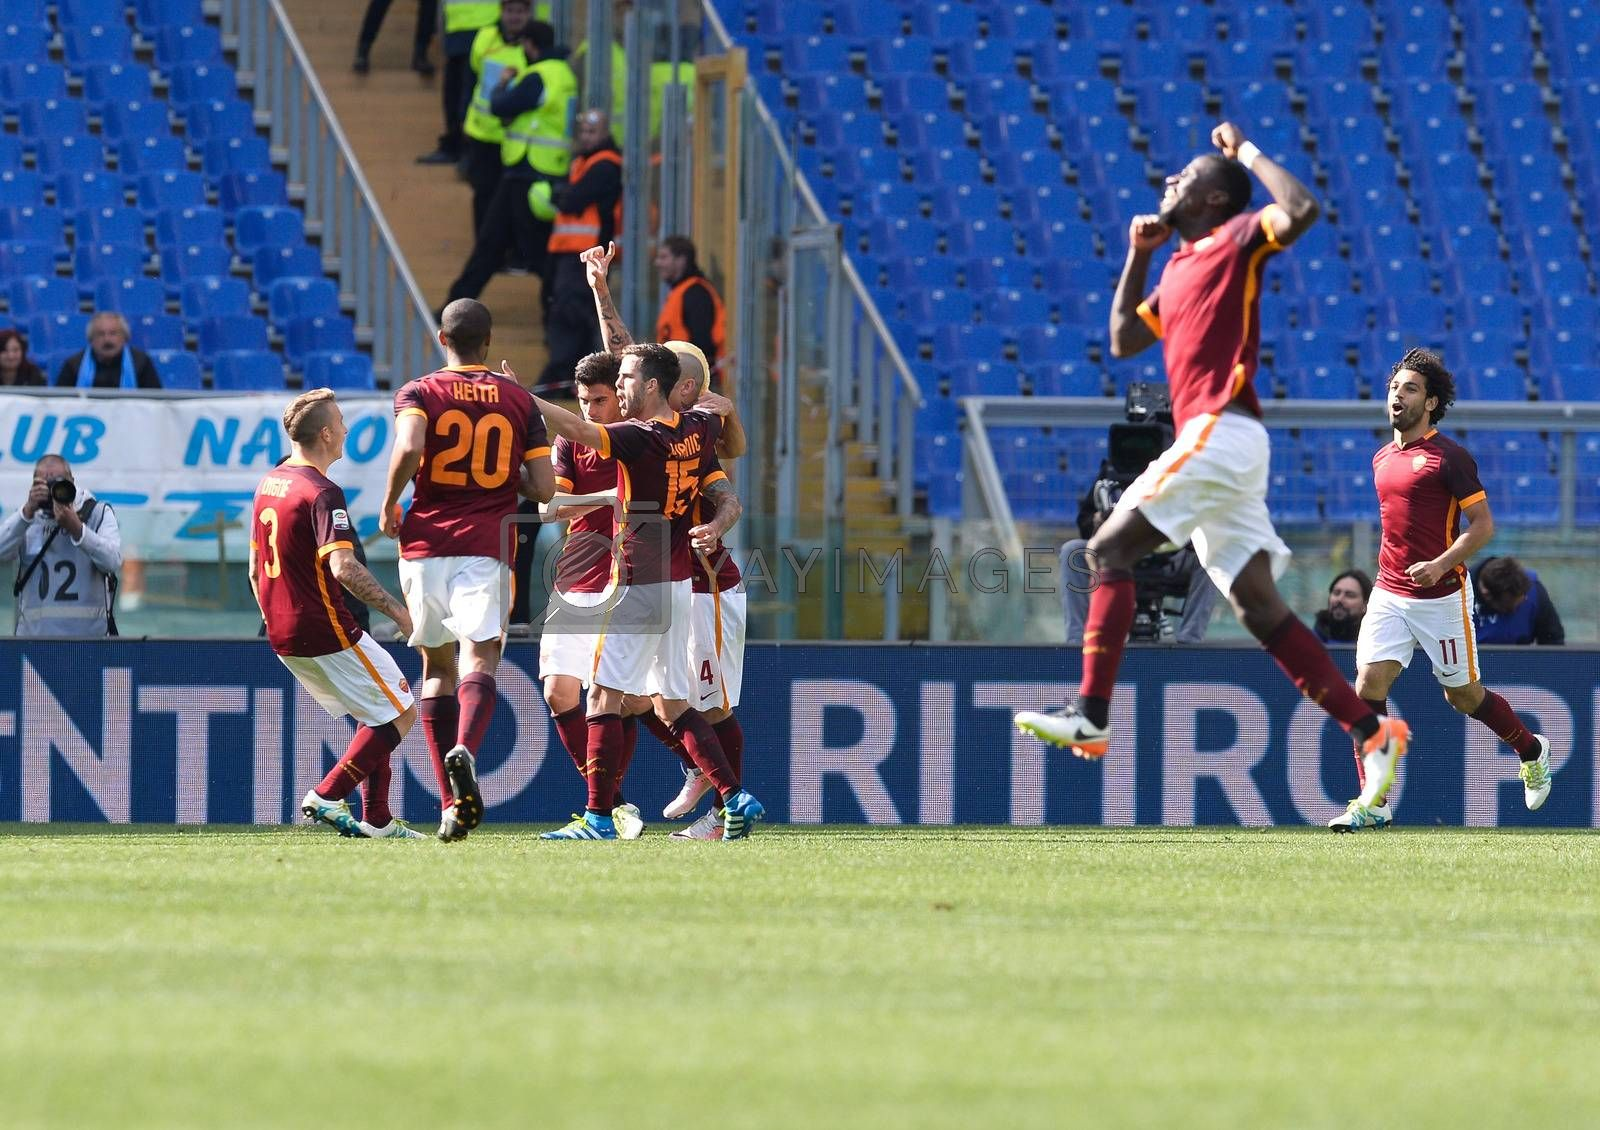 ITALY, Rome: Radja Nainggolan celebrates after scoring a goal 1-0 during the Italian Serie A football match A.S. Roma vs S.S.C. Napoli at the Olympic Stadium in Rome, onn April 25, 2016